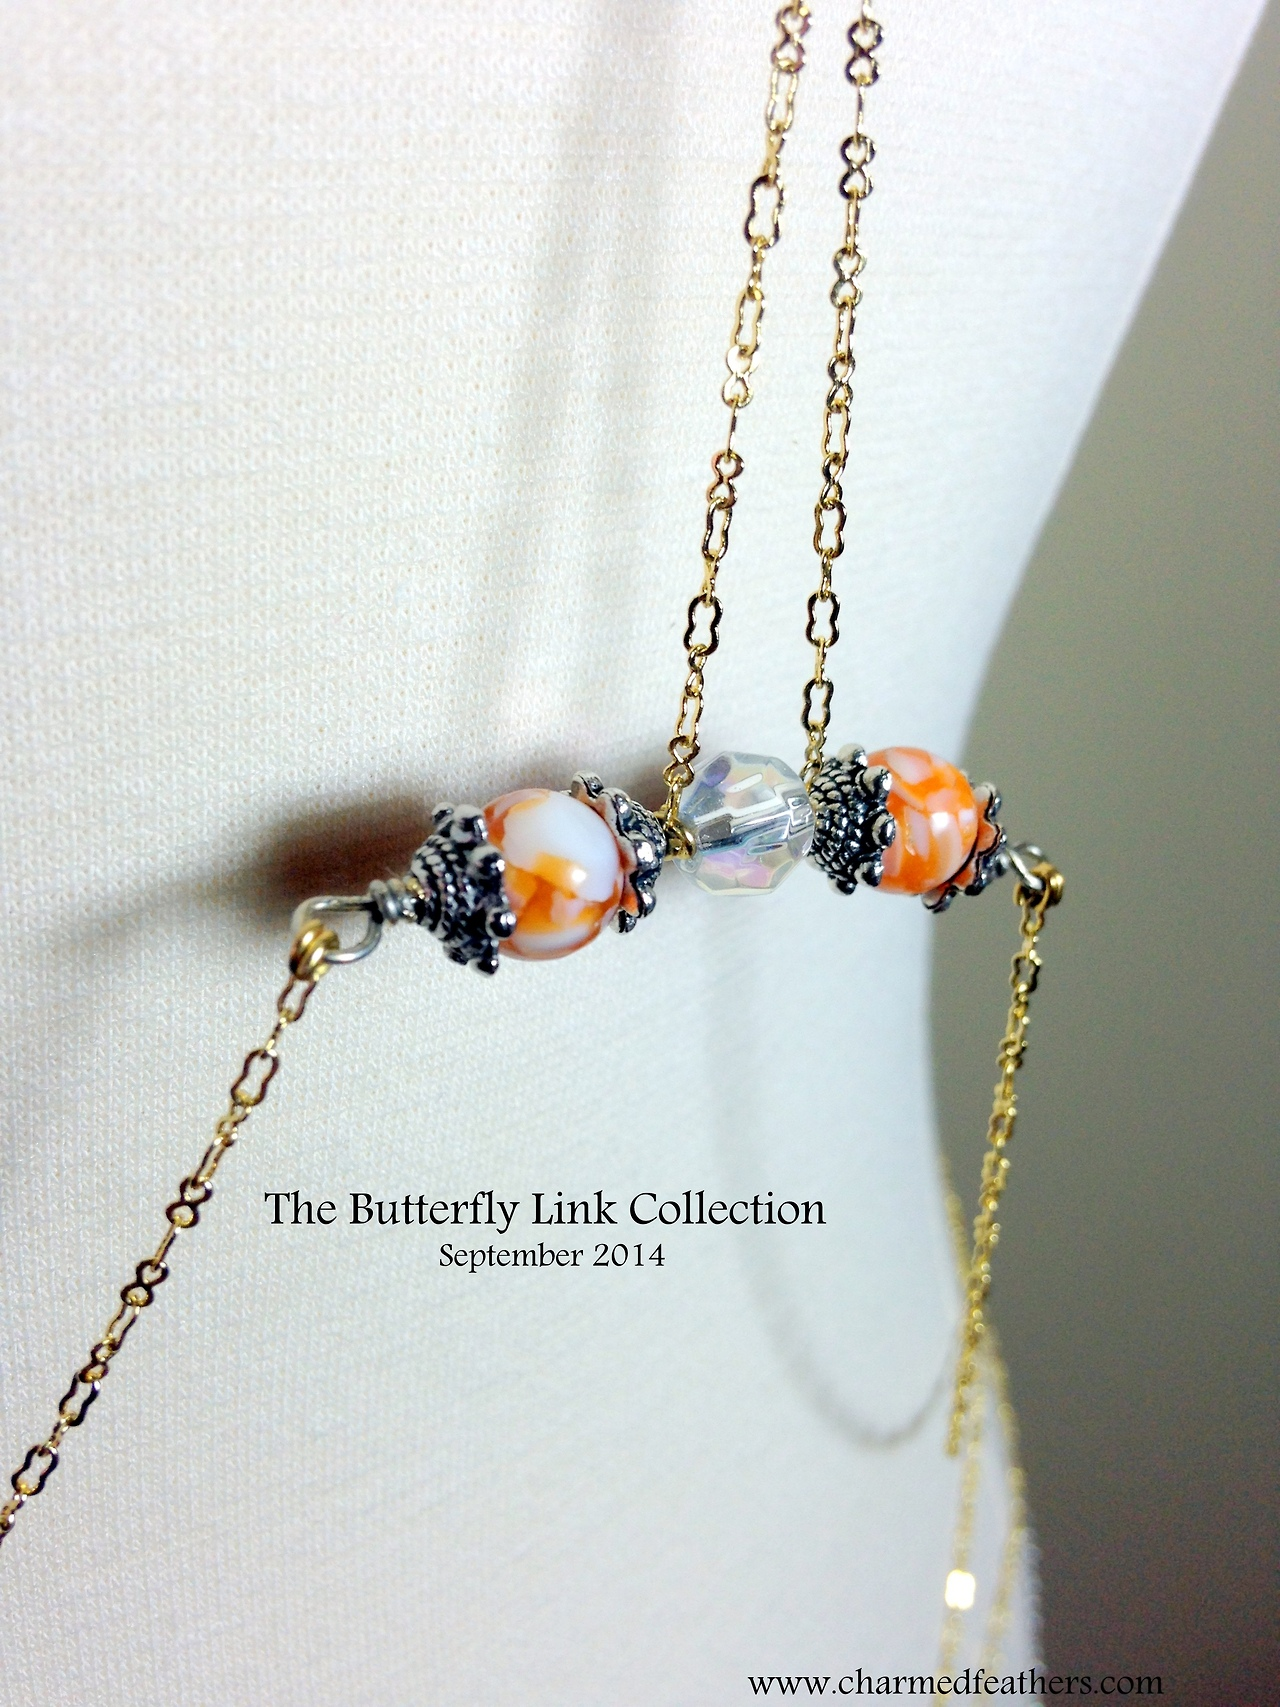 The Butterfly Link is a 3 in one body chain.